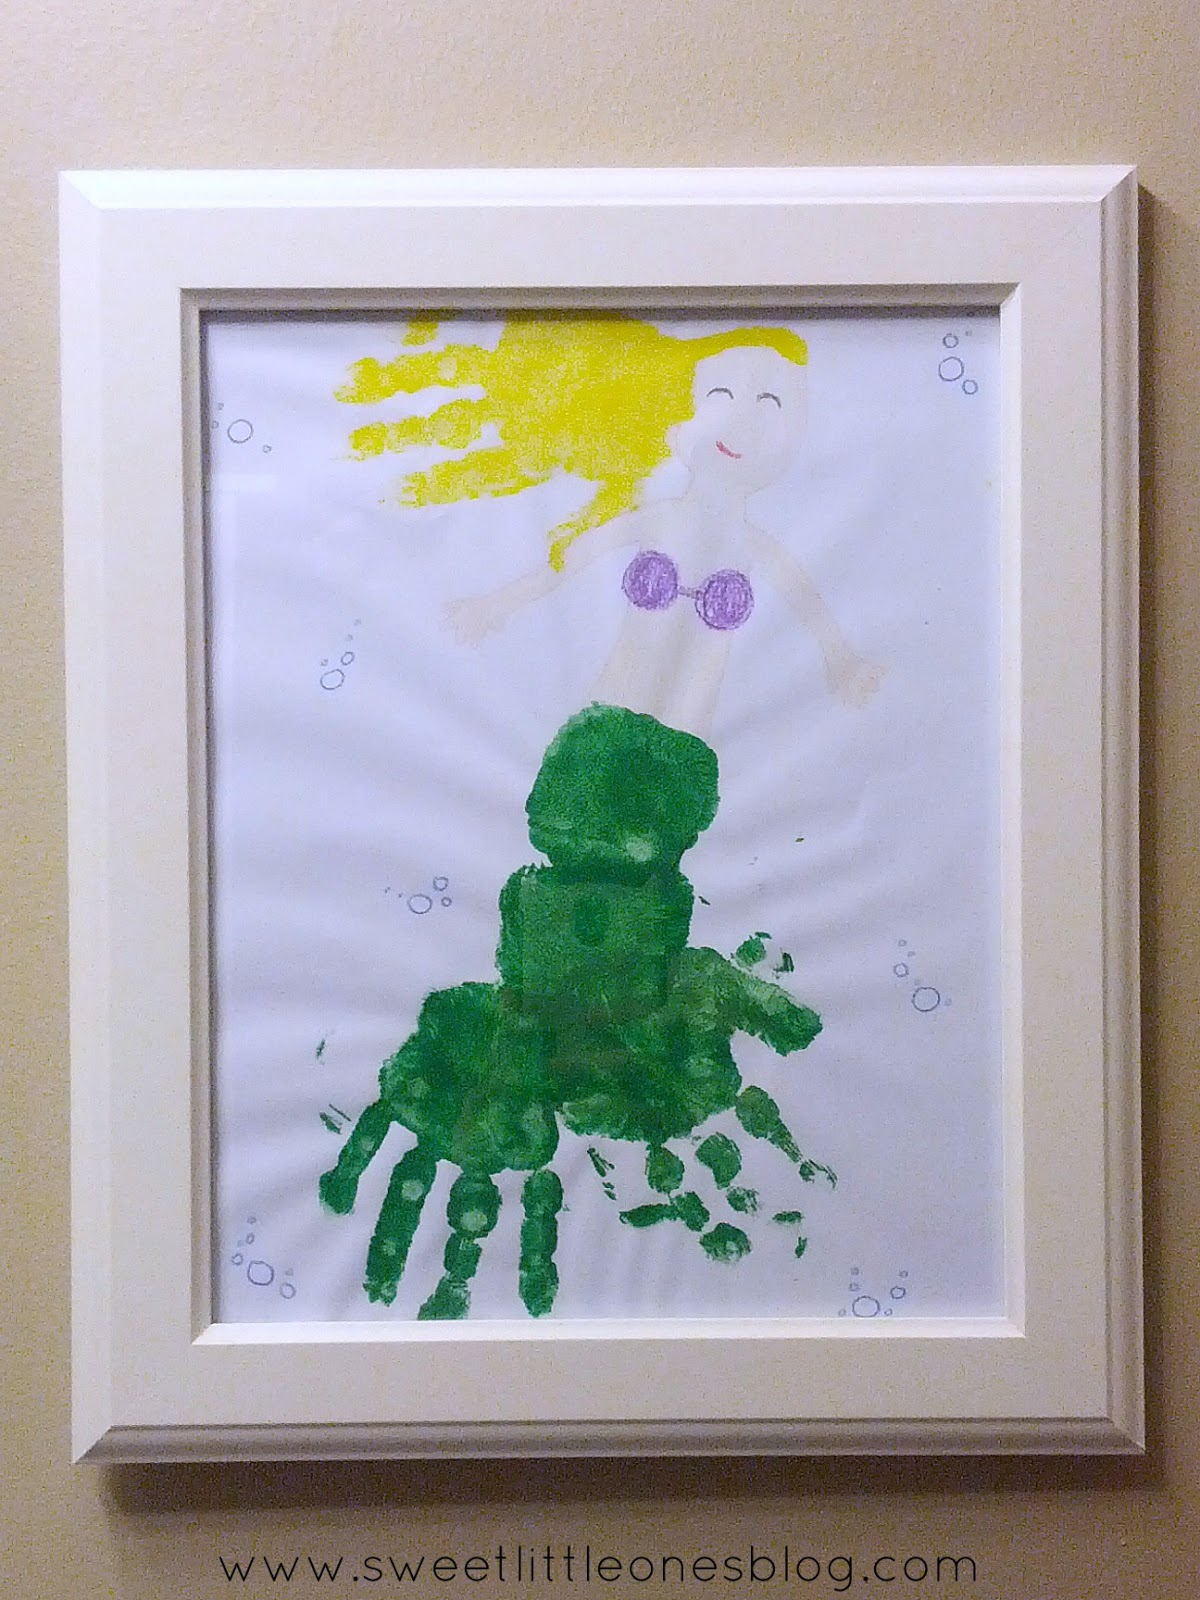 DIY Mermaid Handprint Art - www.sweetlittleonesblog.com